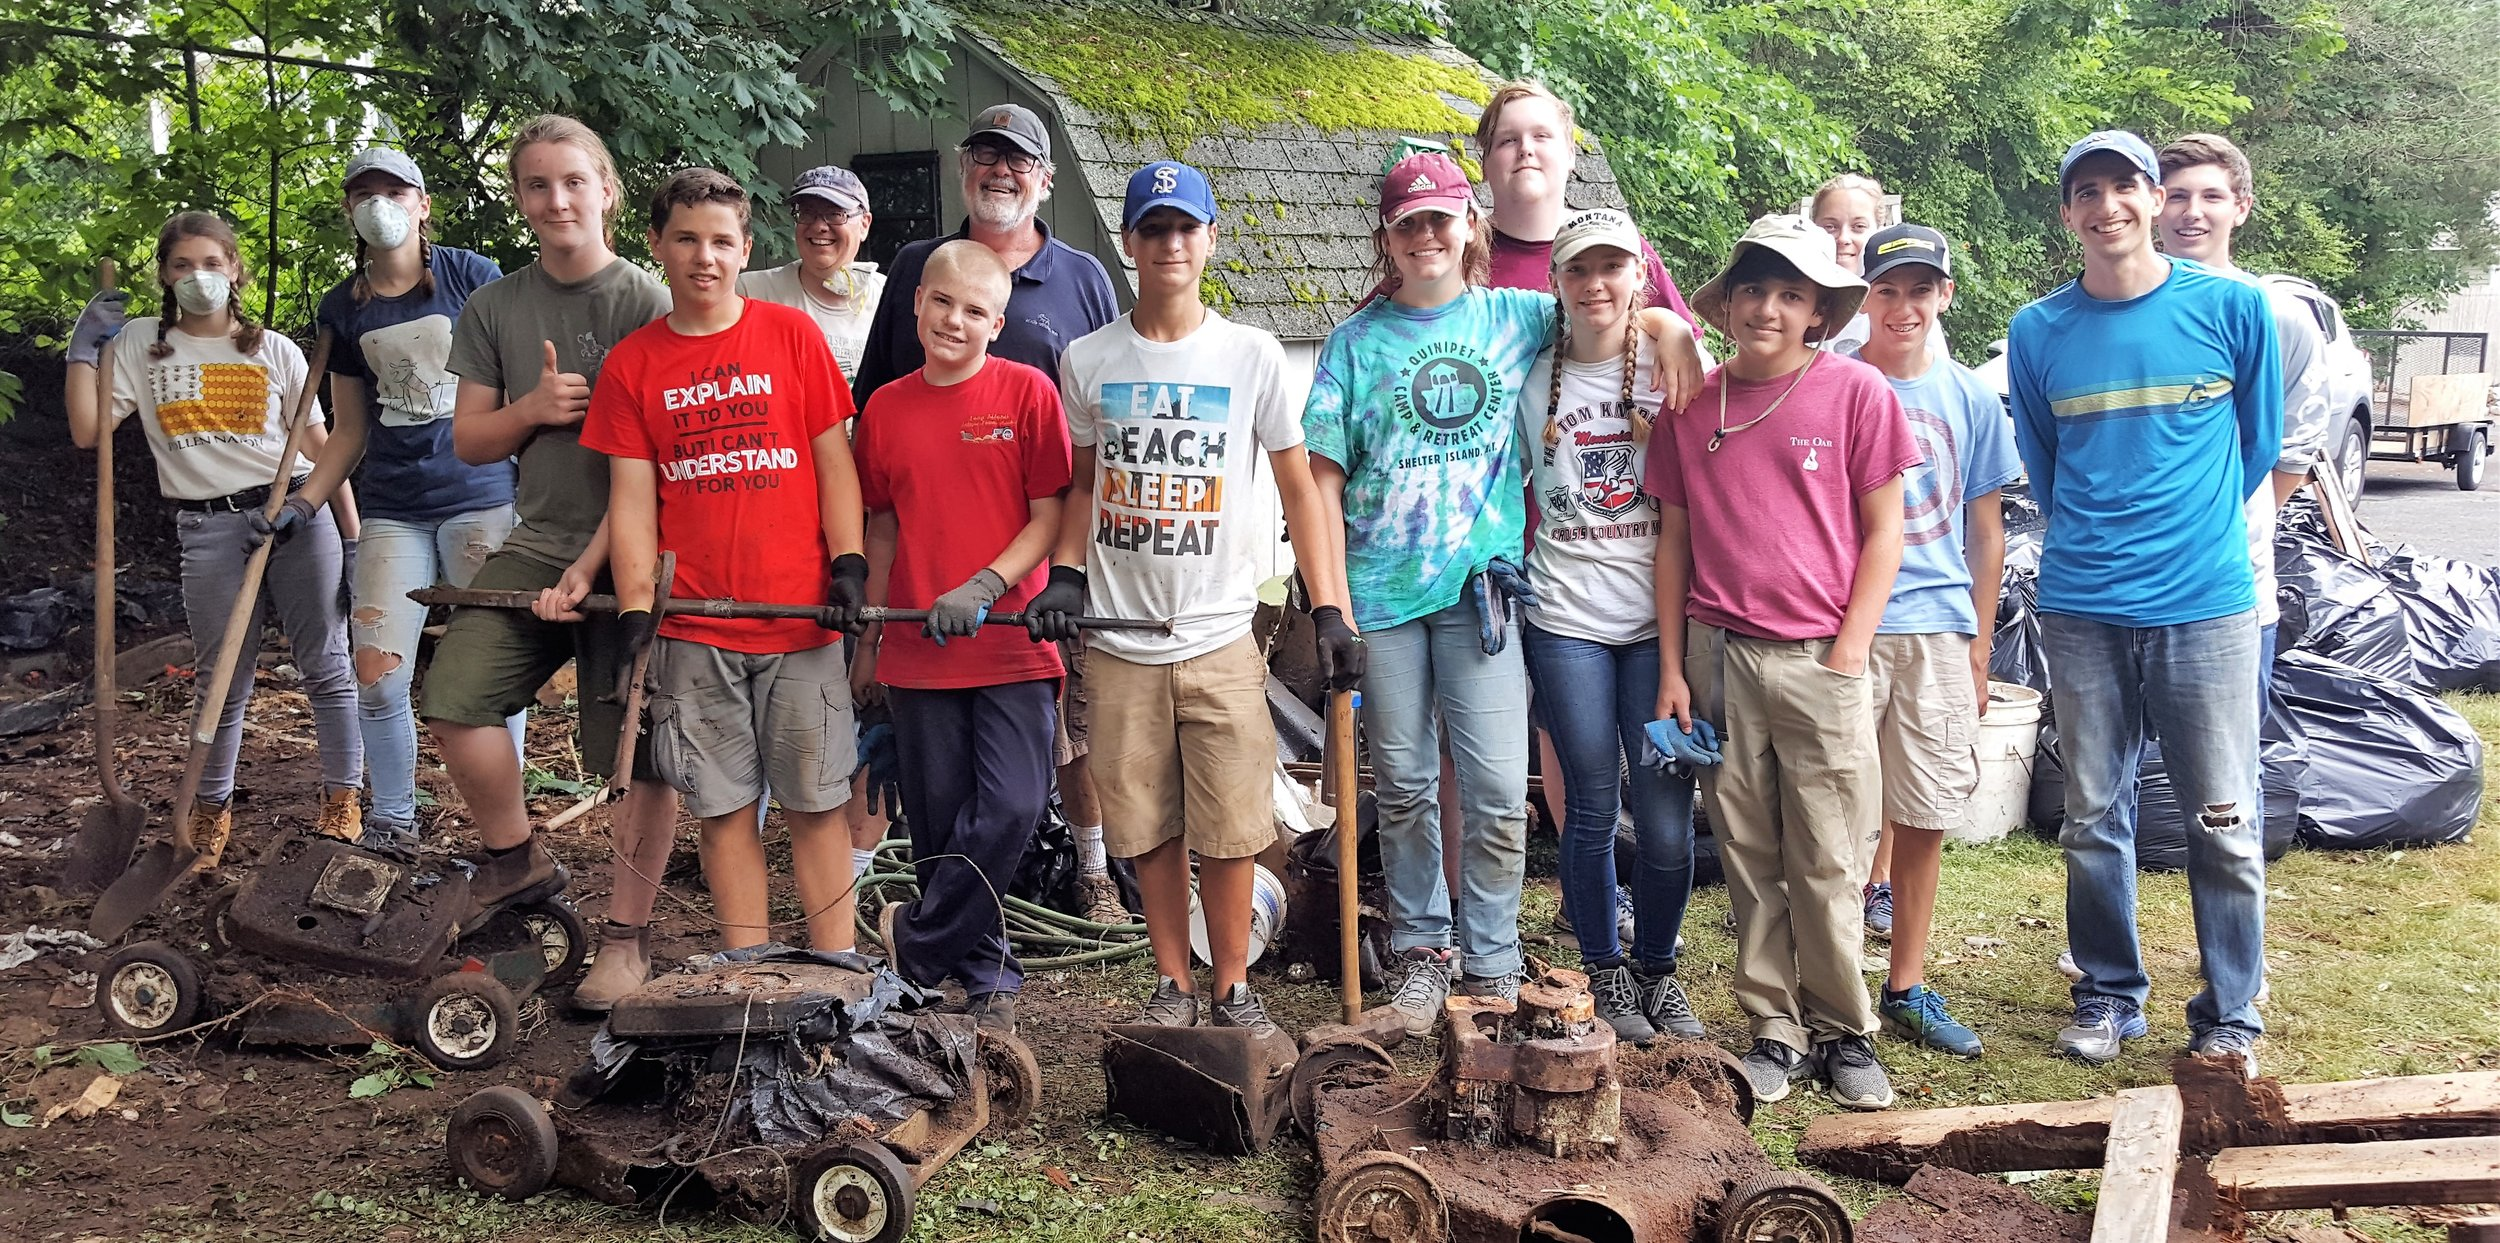 Summer Mission Trip 2018   The All-Faith Youth Group's 4th Annual Mission Trip was a great success! They had 12 teens participate this year.  The first day, they worked at a house in Mattituck to help clear a property that was severely overgrown.  The next day, they helped tear down two old sheds for the 91-year-old homeowner. On the third day, the kids went to the Country Fair in Medford, where they drove go-karts,  played mini-golf, went back on the go-karts, played laser tag, and returned to the  go-karts one last time. They really liked the go-karts!